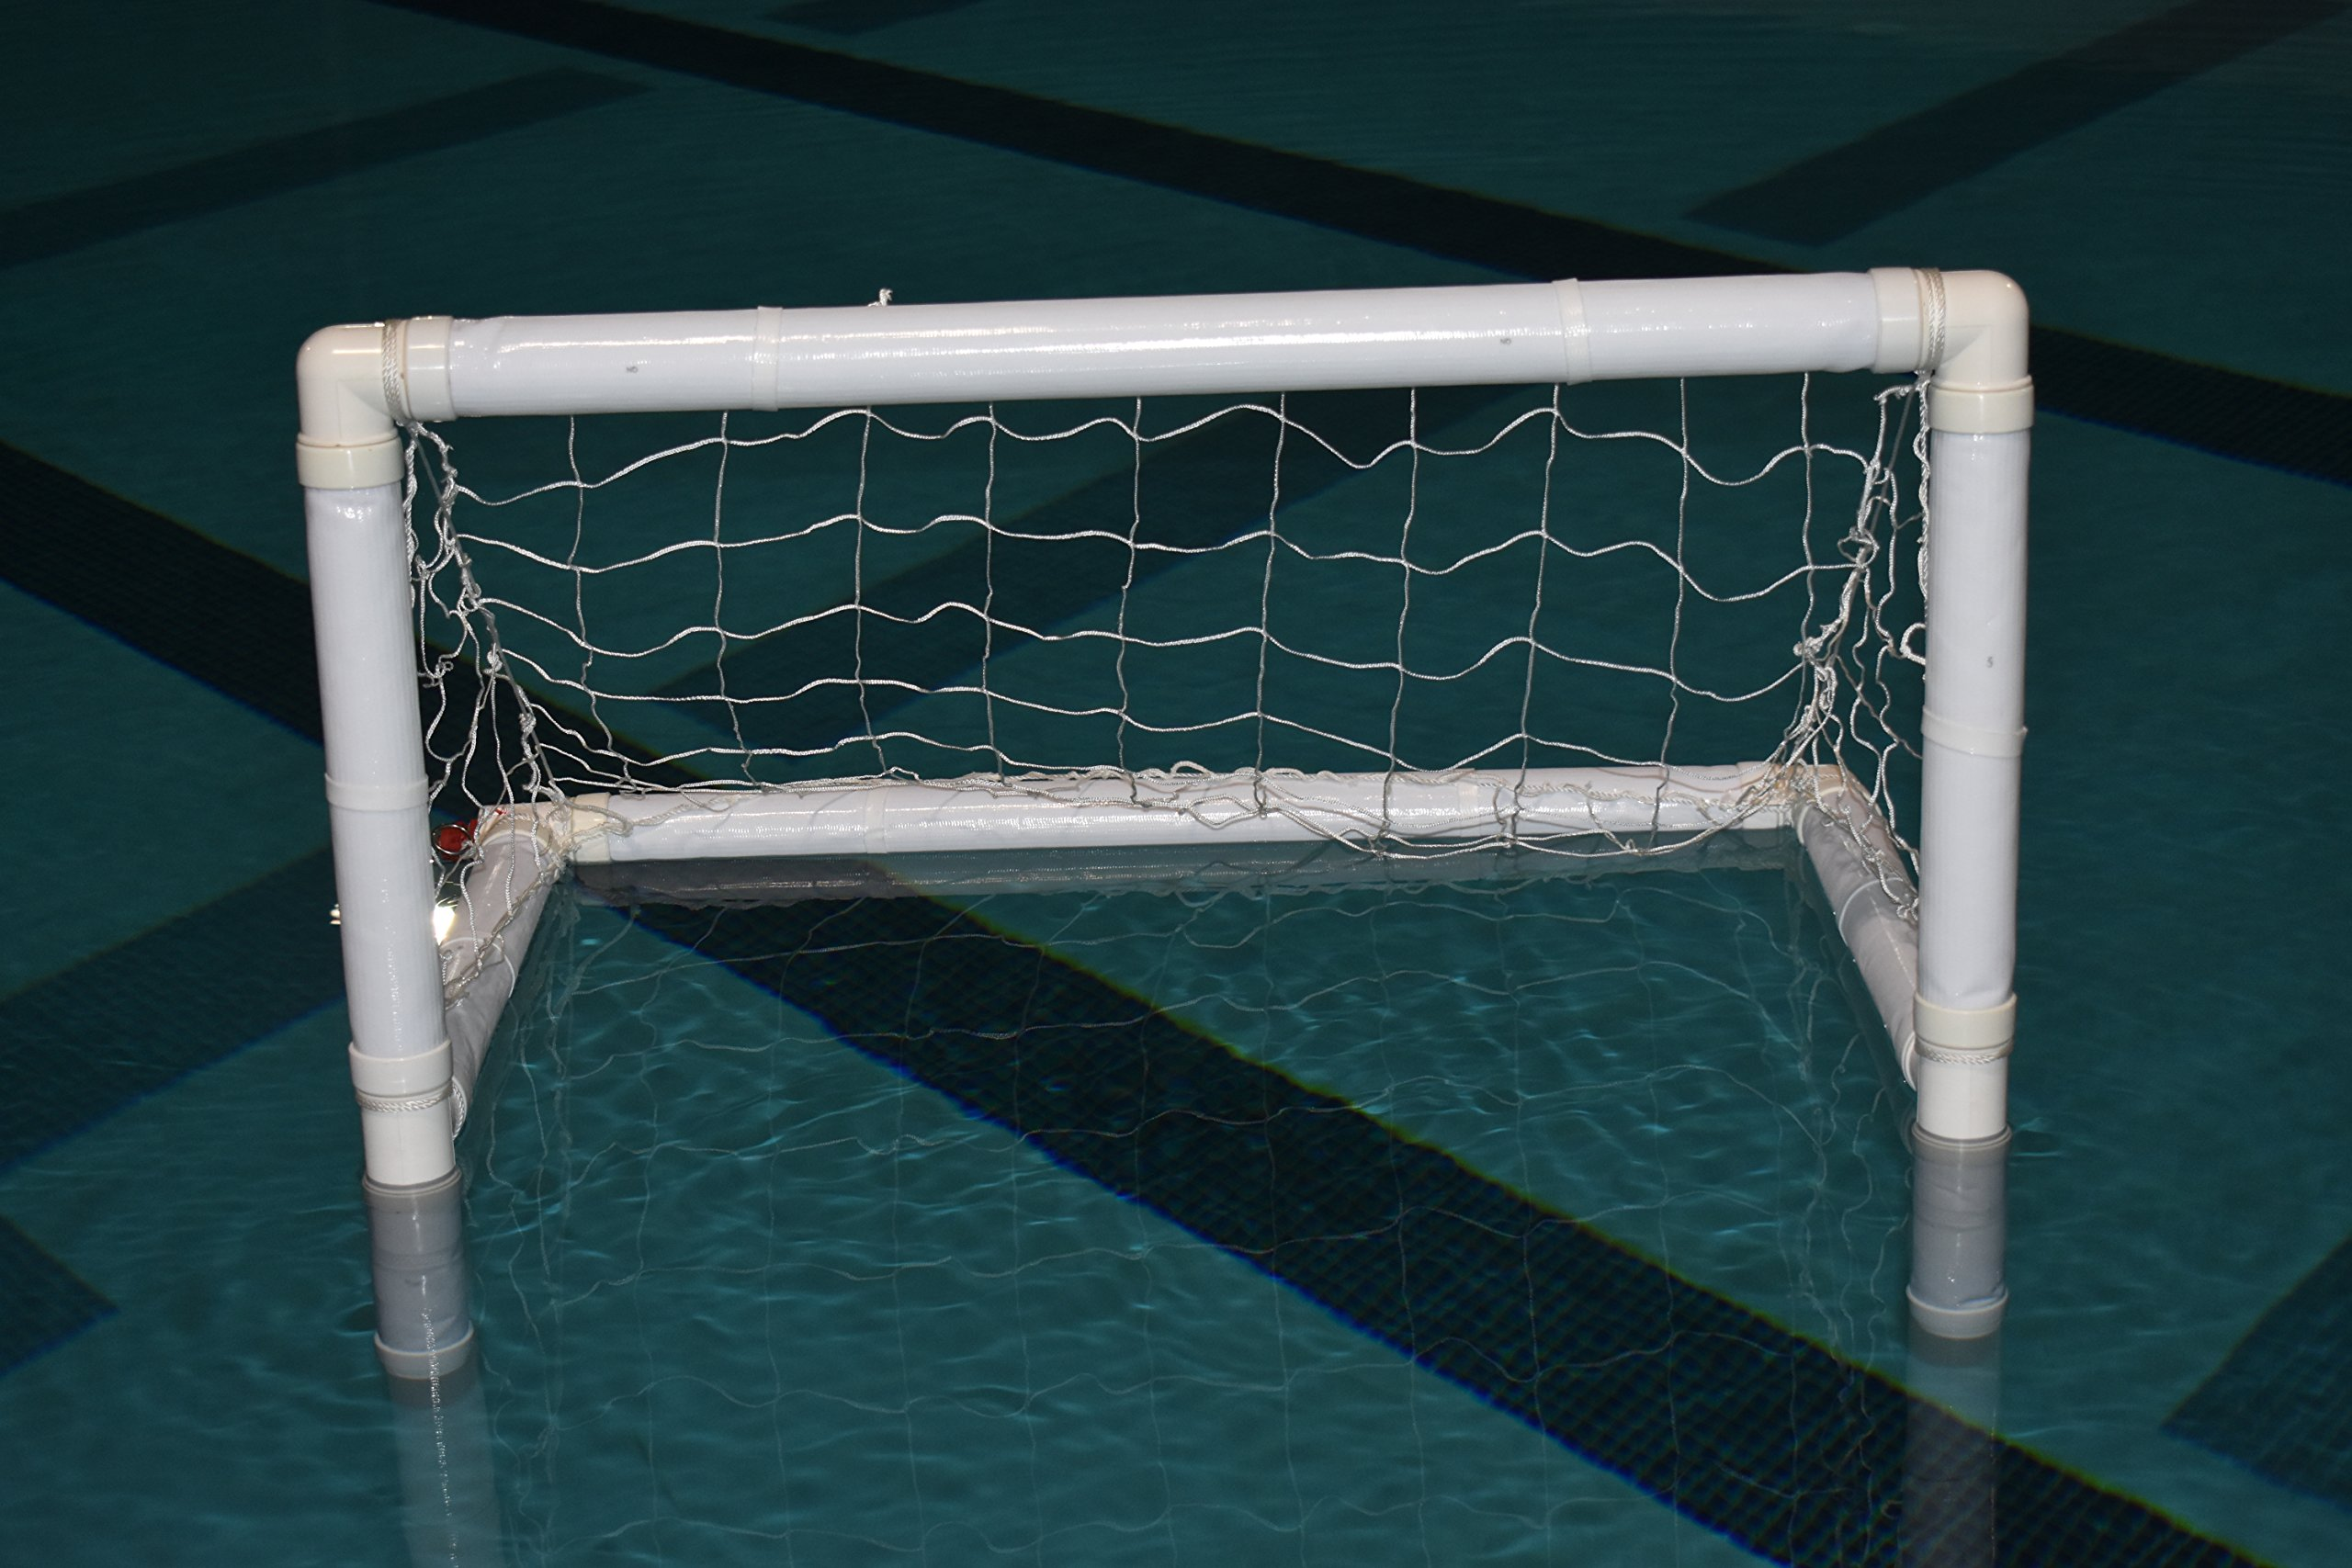 Airgoal Waterpolo Intro Model for kids 3ft long by 2ft tall 101